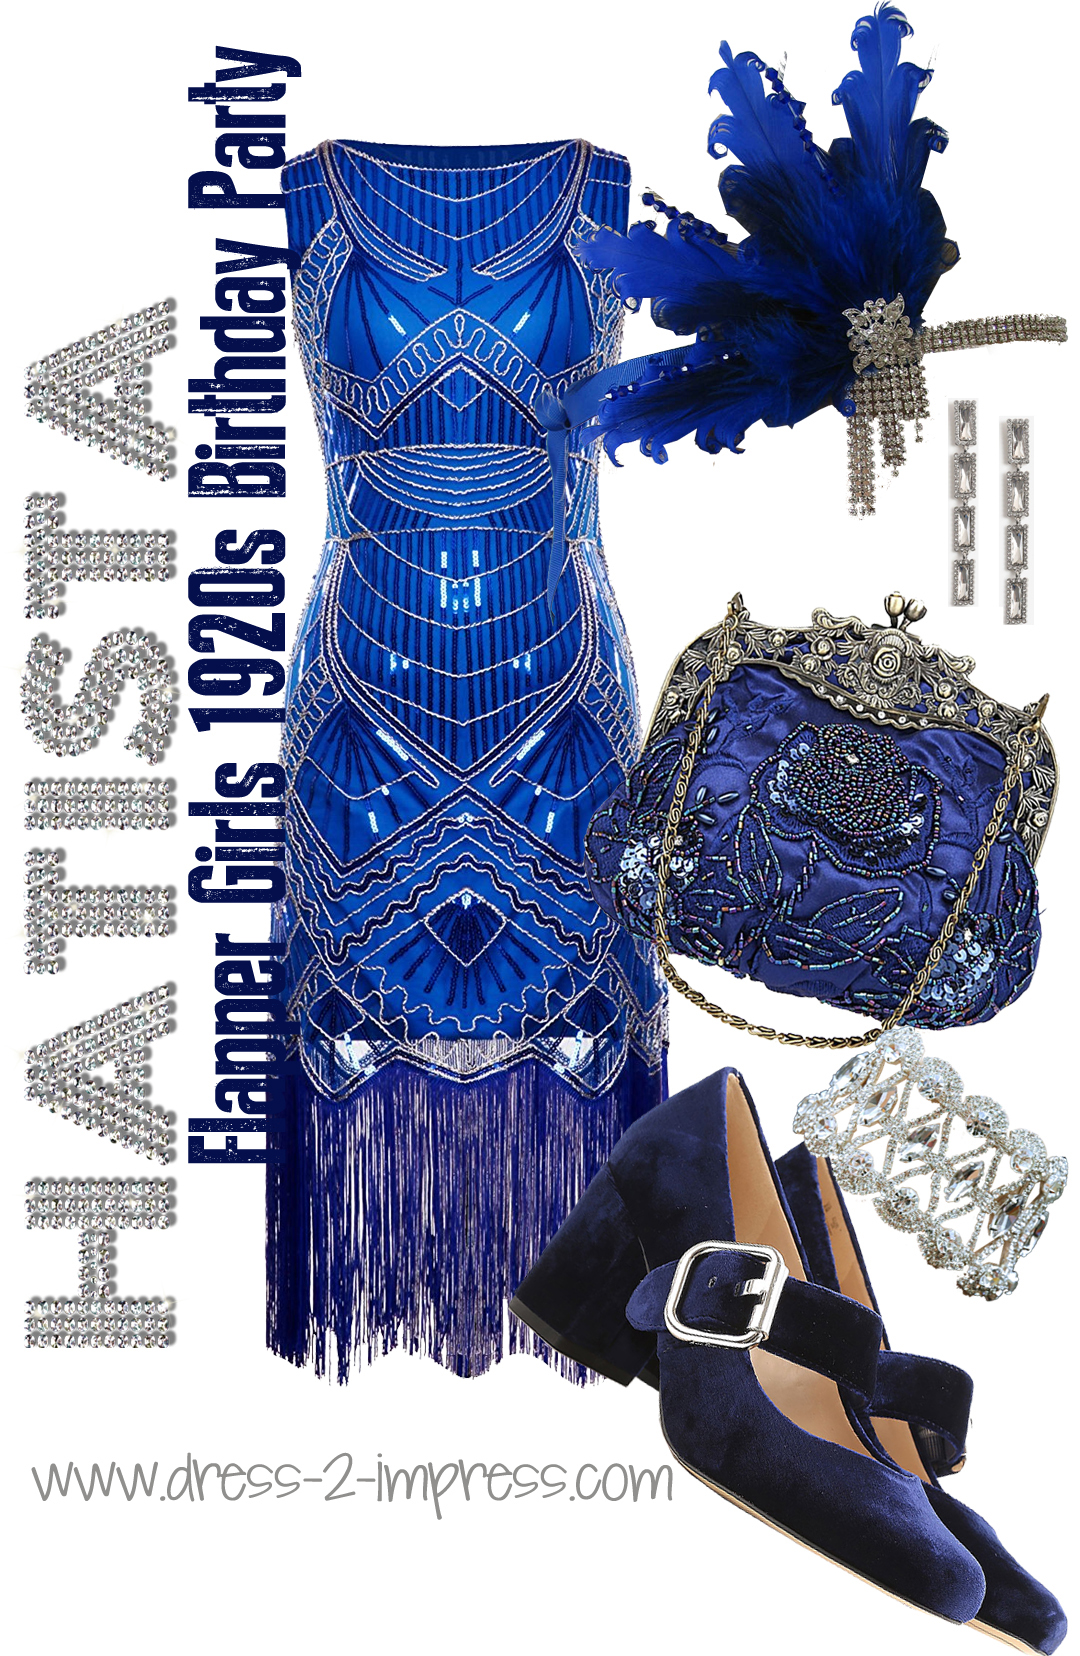 Flapper Girls Dress, Royal Blue Flapper Girl Outfit inspiration, ideas to wear for a 1920s Party Outfit. Great Gatsby Flapper Girl Theme New Years Eve Christmas or Birthday Party, Flapper Girls Outfit ideas, What to wear to a 20's theme New Years Eve Party